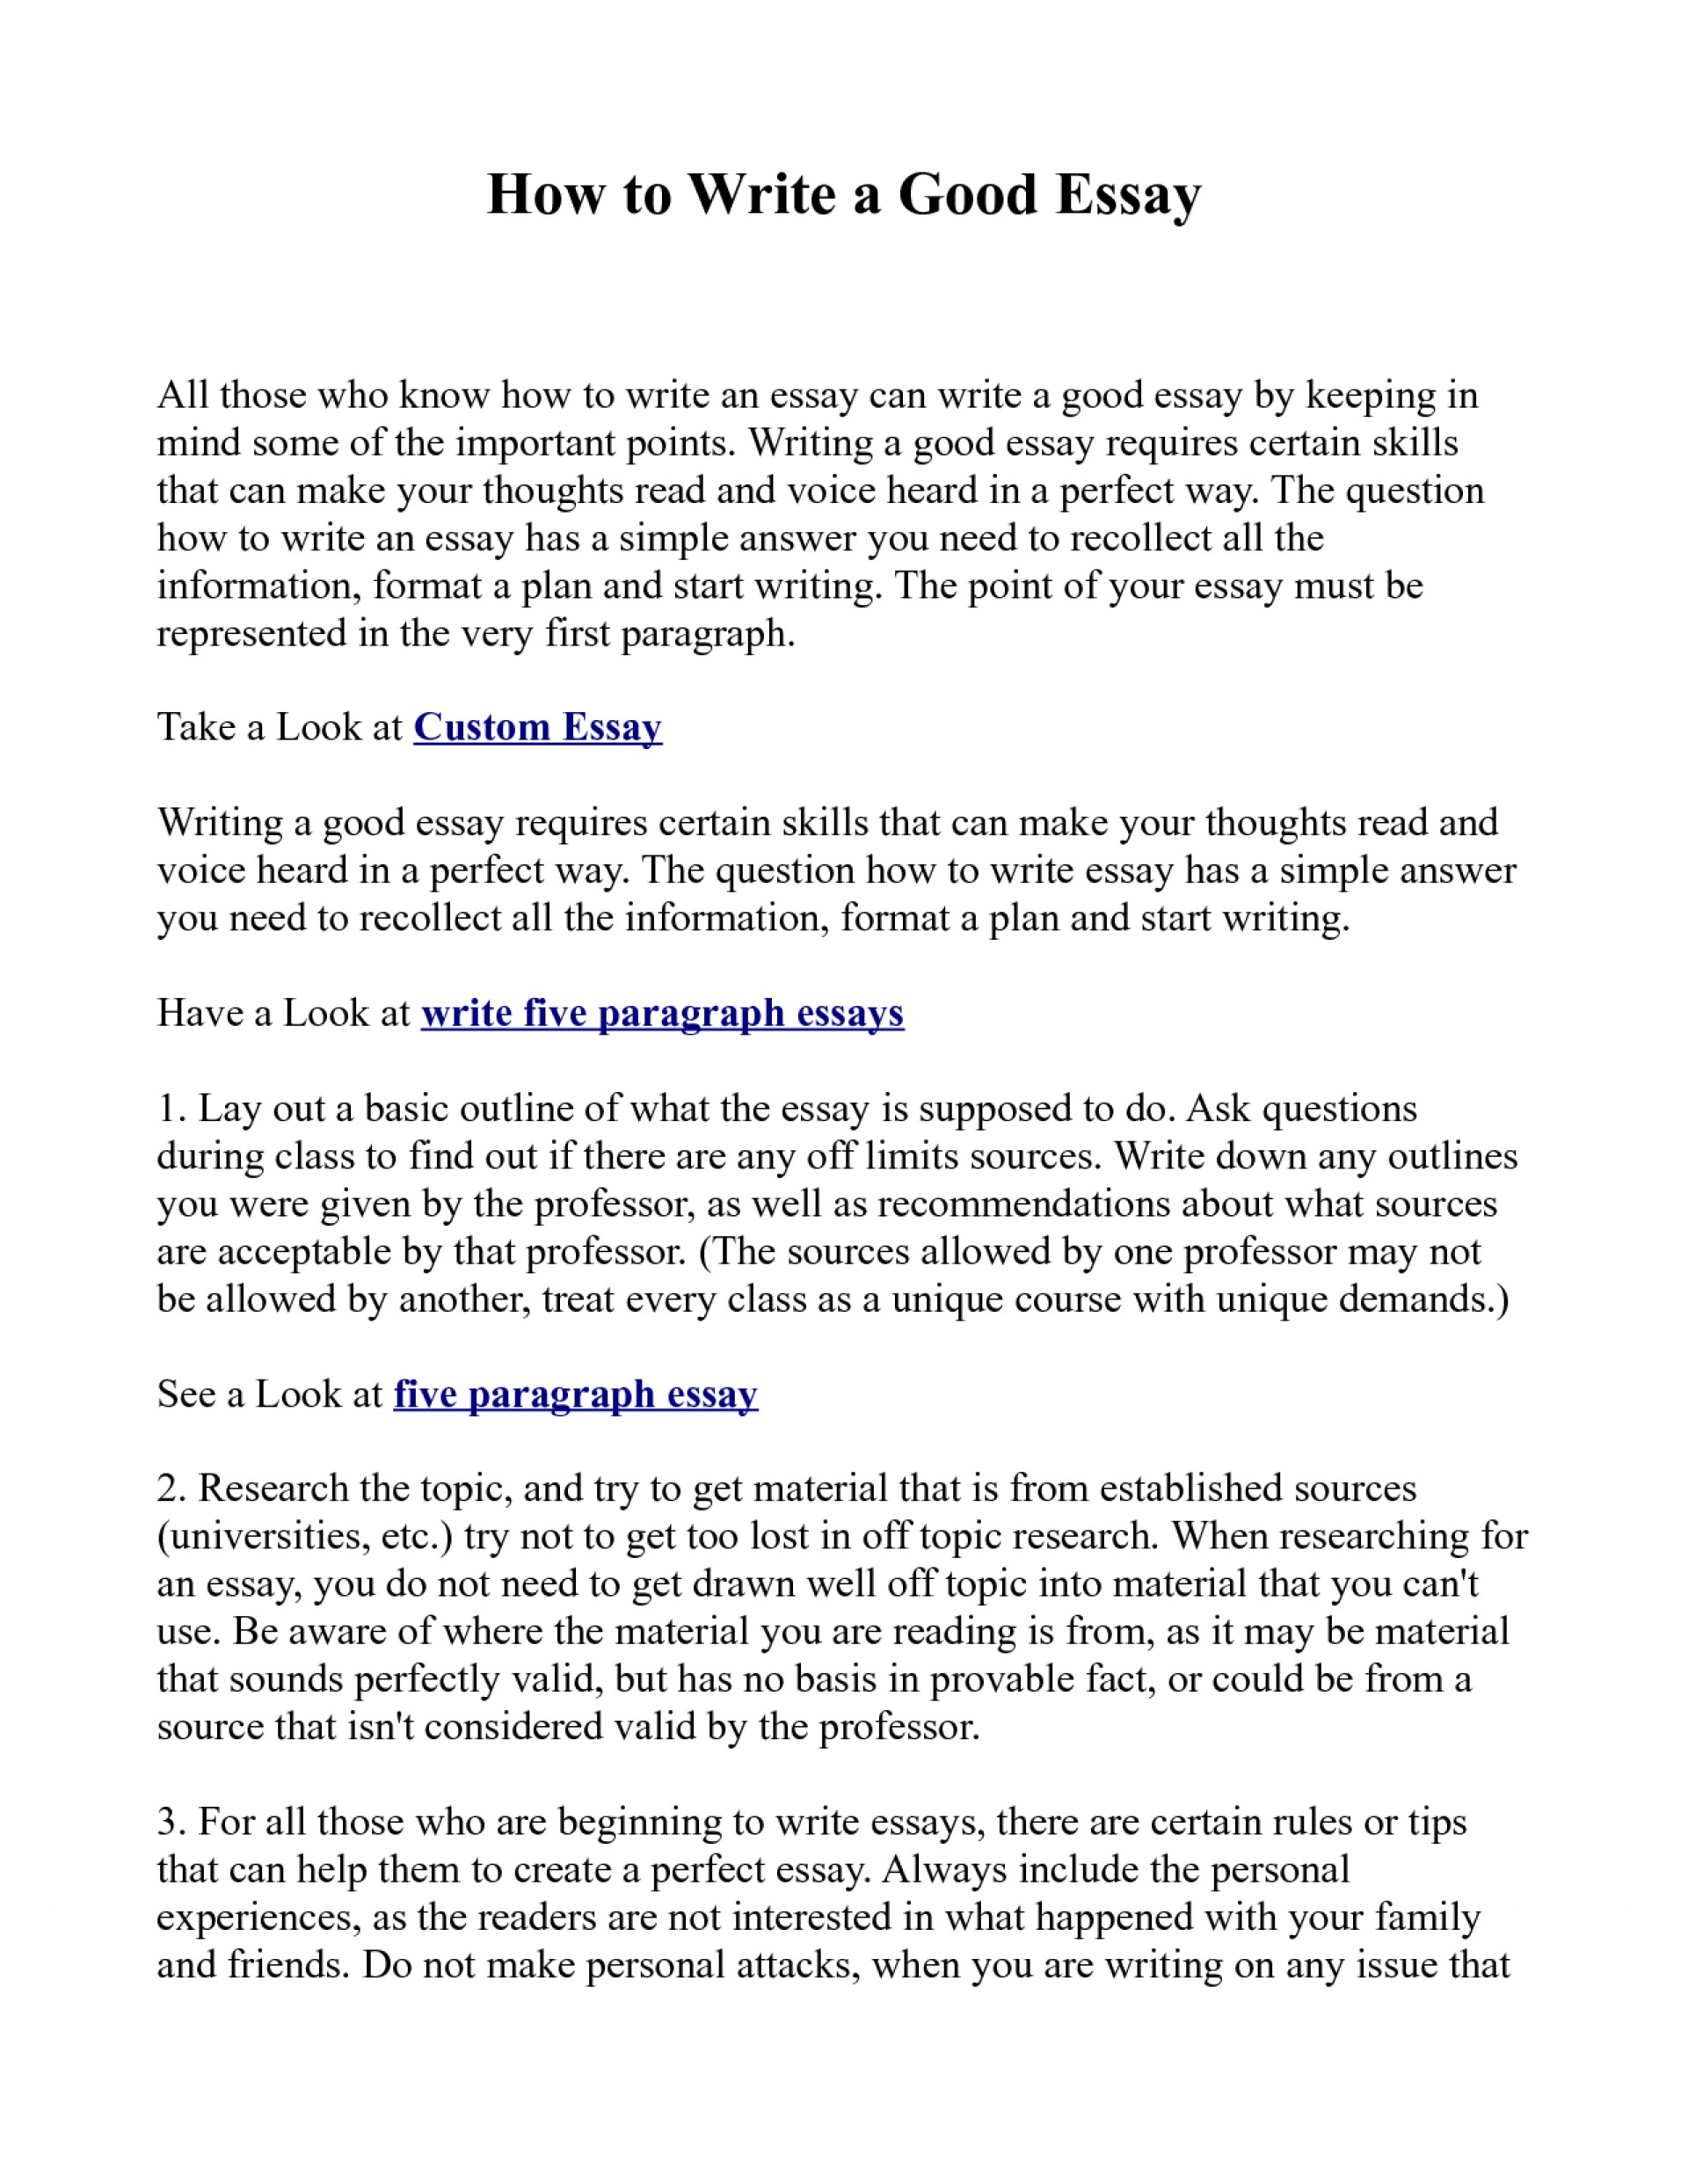 003 How To Make Good Essay Stupendous A Paper Plane Step By Title Page Thesis Statement For Descriptive 1920